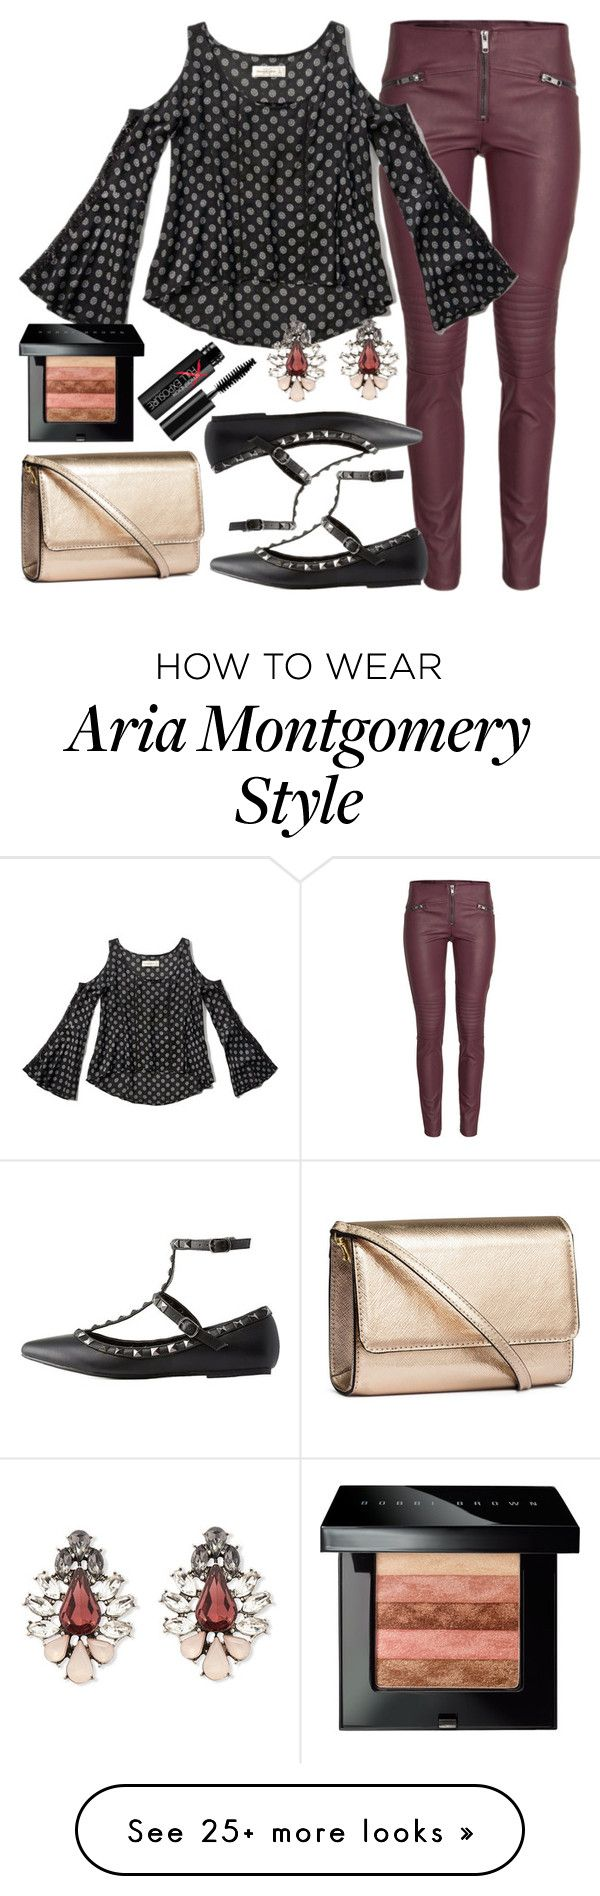 """Aria Montgomery inspired outfit"" by liarsstyle on Polyvore featuring mode, H&M, Abercrombie & Fitch, Charlotte Russe, Forever 21, Bobbi Brown Cosmetics, Smashbox, NightOut en party"